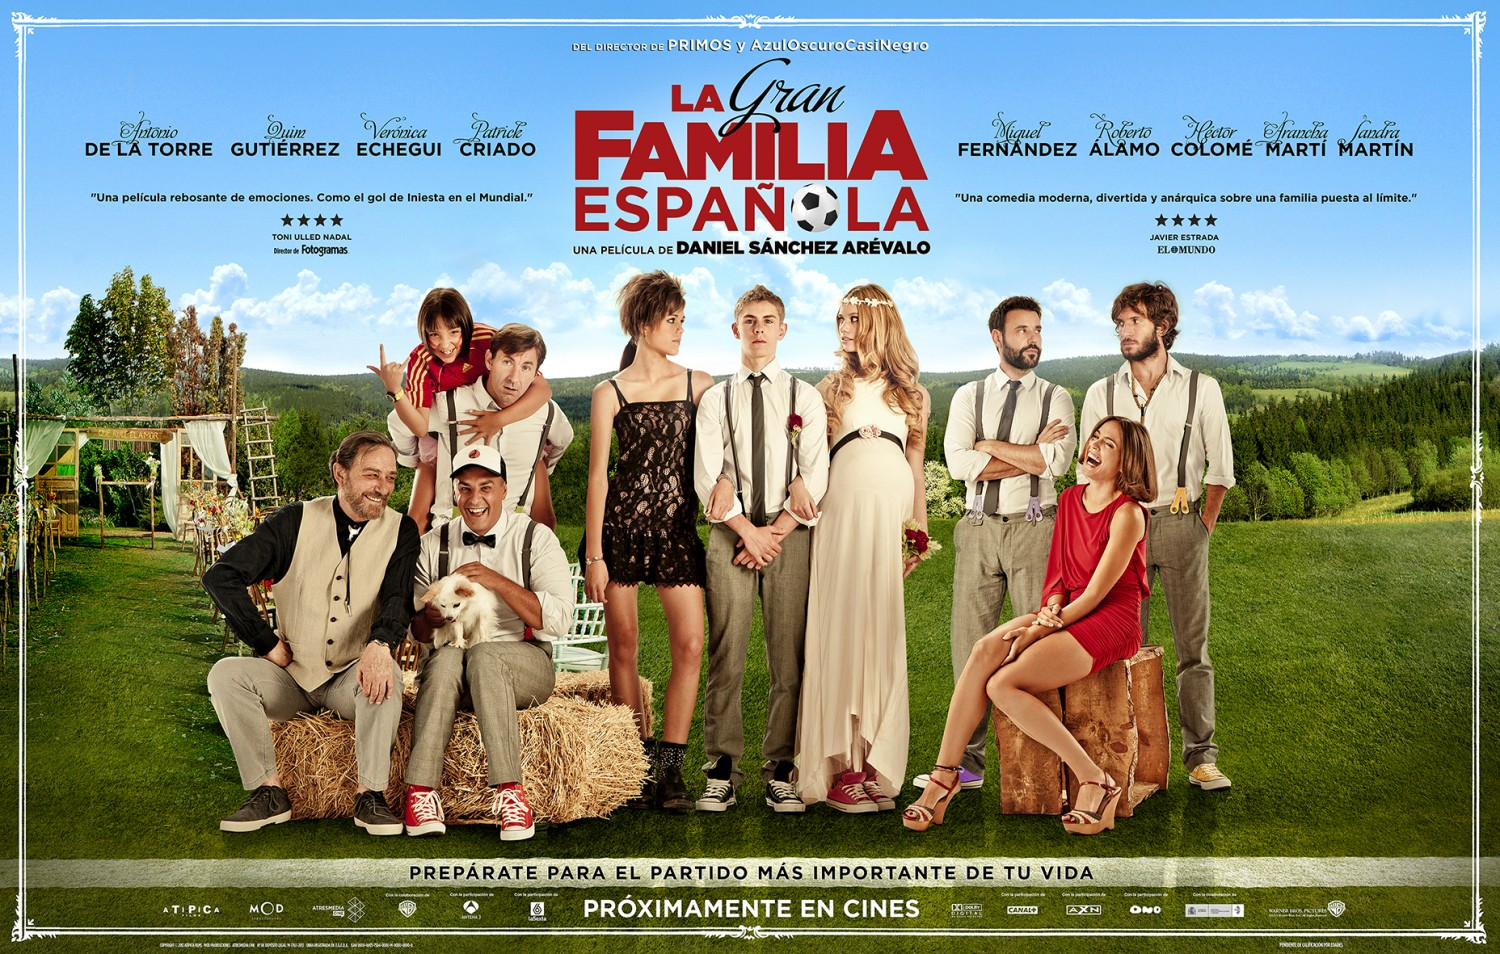 a review of la gran familia espanola a film by daniel sanchez arevalo The director daniel s nchez ar valo (azuloscurocasinegro, cousins ), he embarks on a new comedy that has as a backdrop the world cup in south africa and the setting is a wedding that takes precisely the day of the final this la gran familia espa ola.